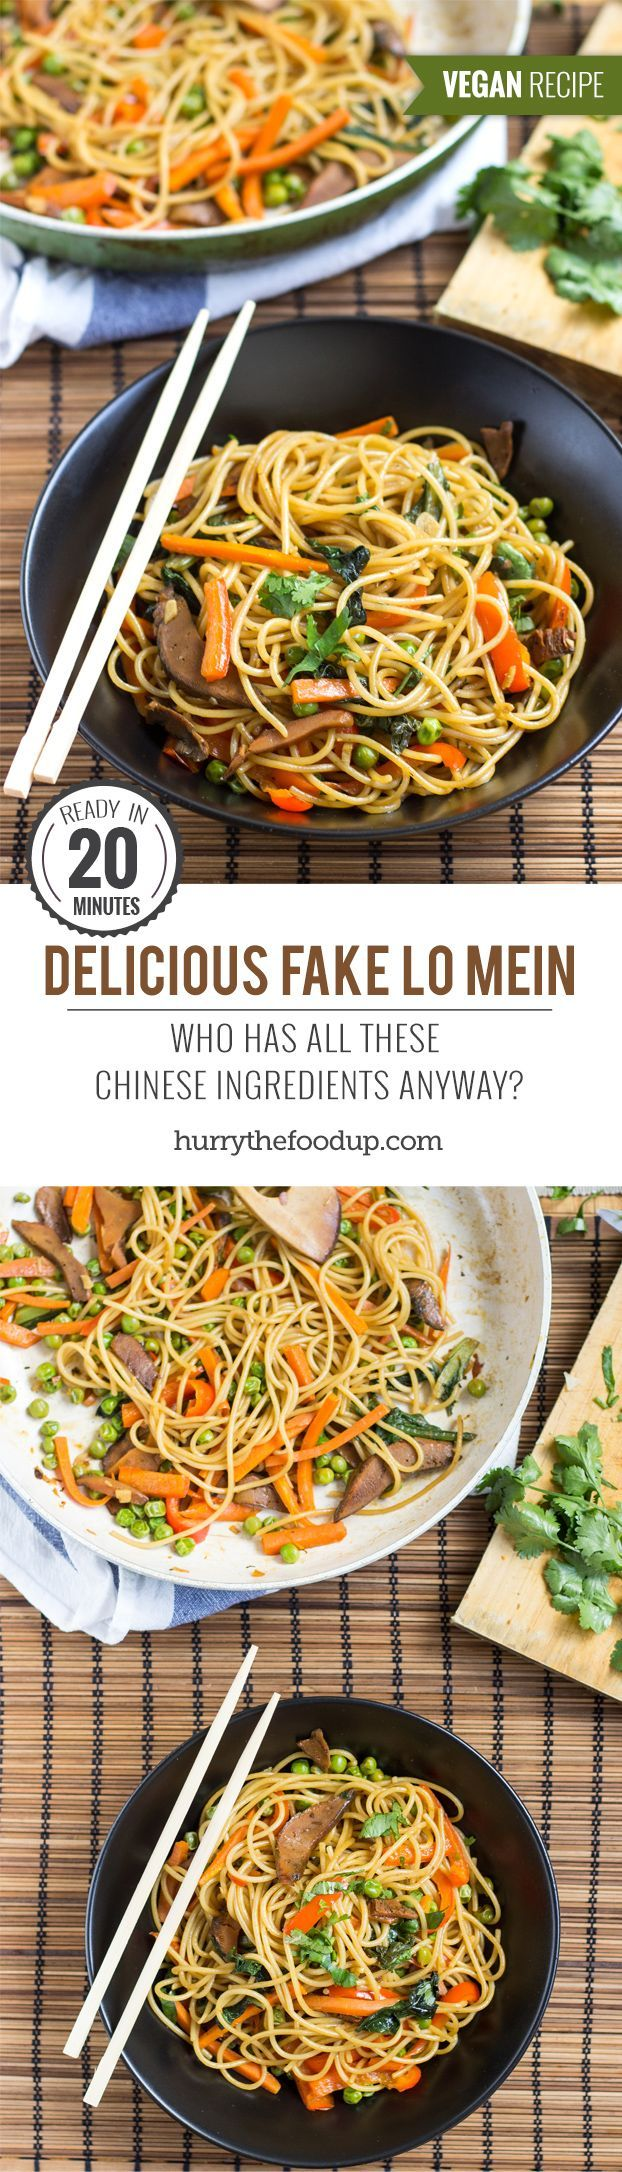 Delicious Fake Lo Mein. Ready in 20 minutes | #dinner #vegan | http://hurrythefoodup.com